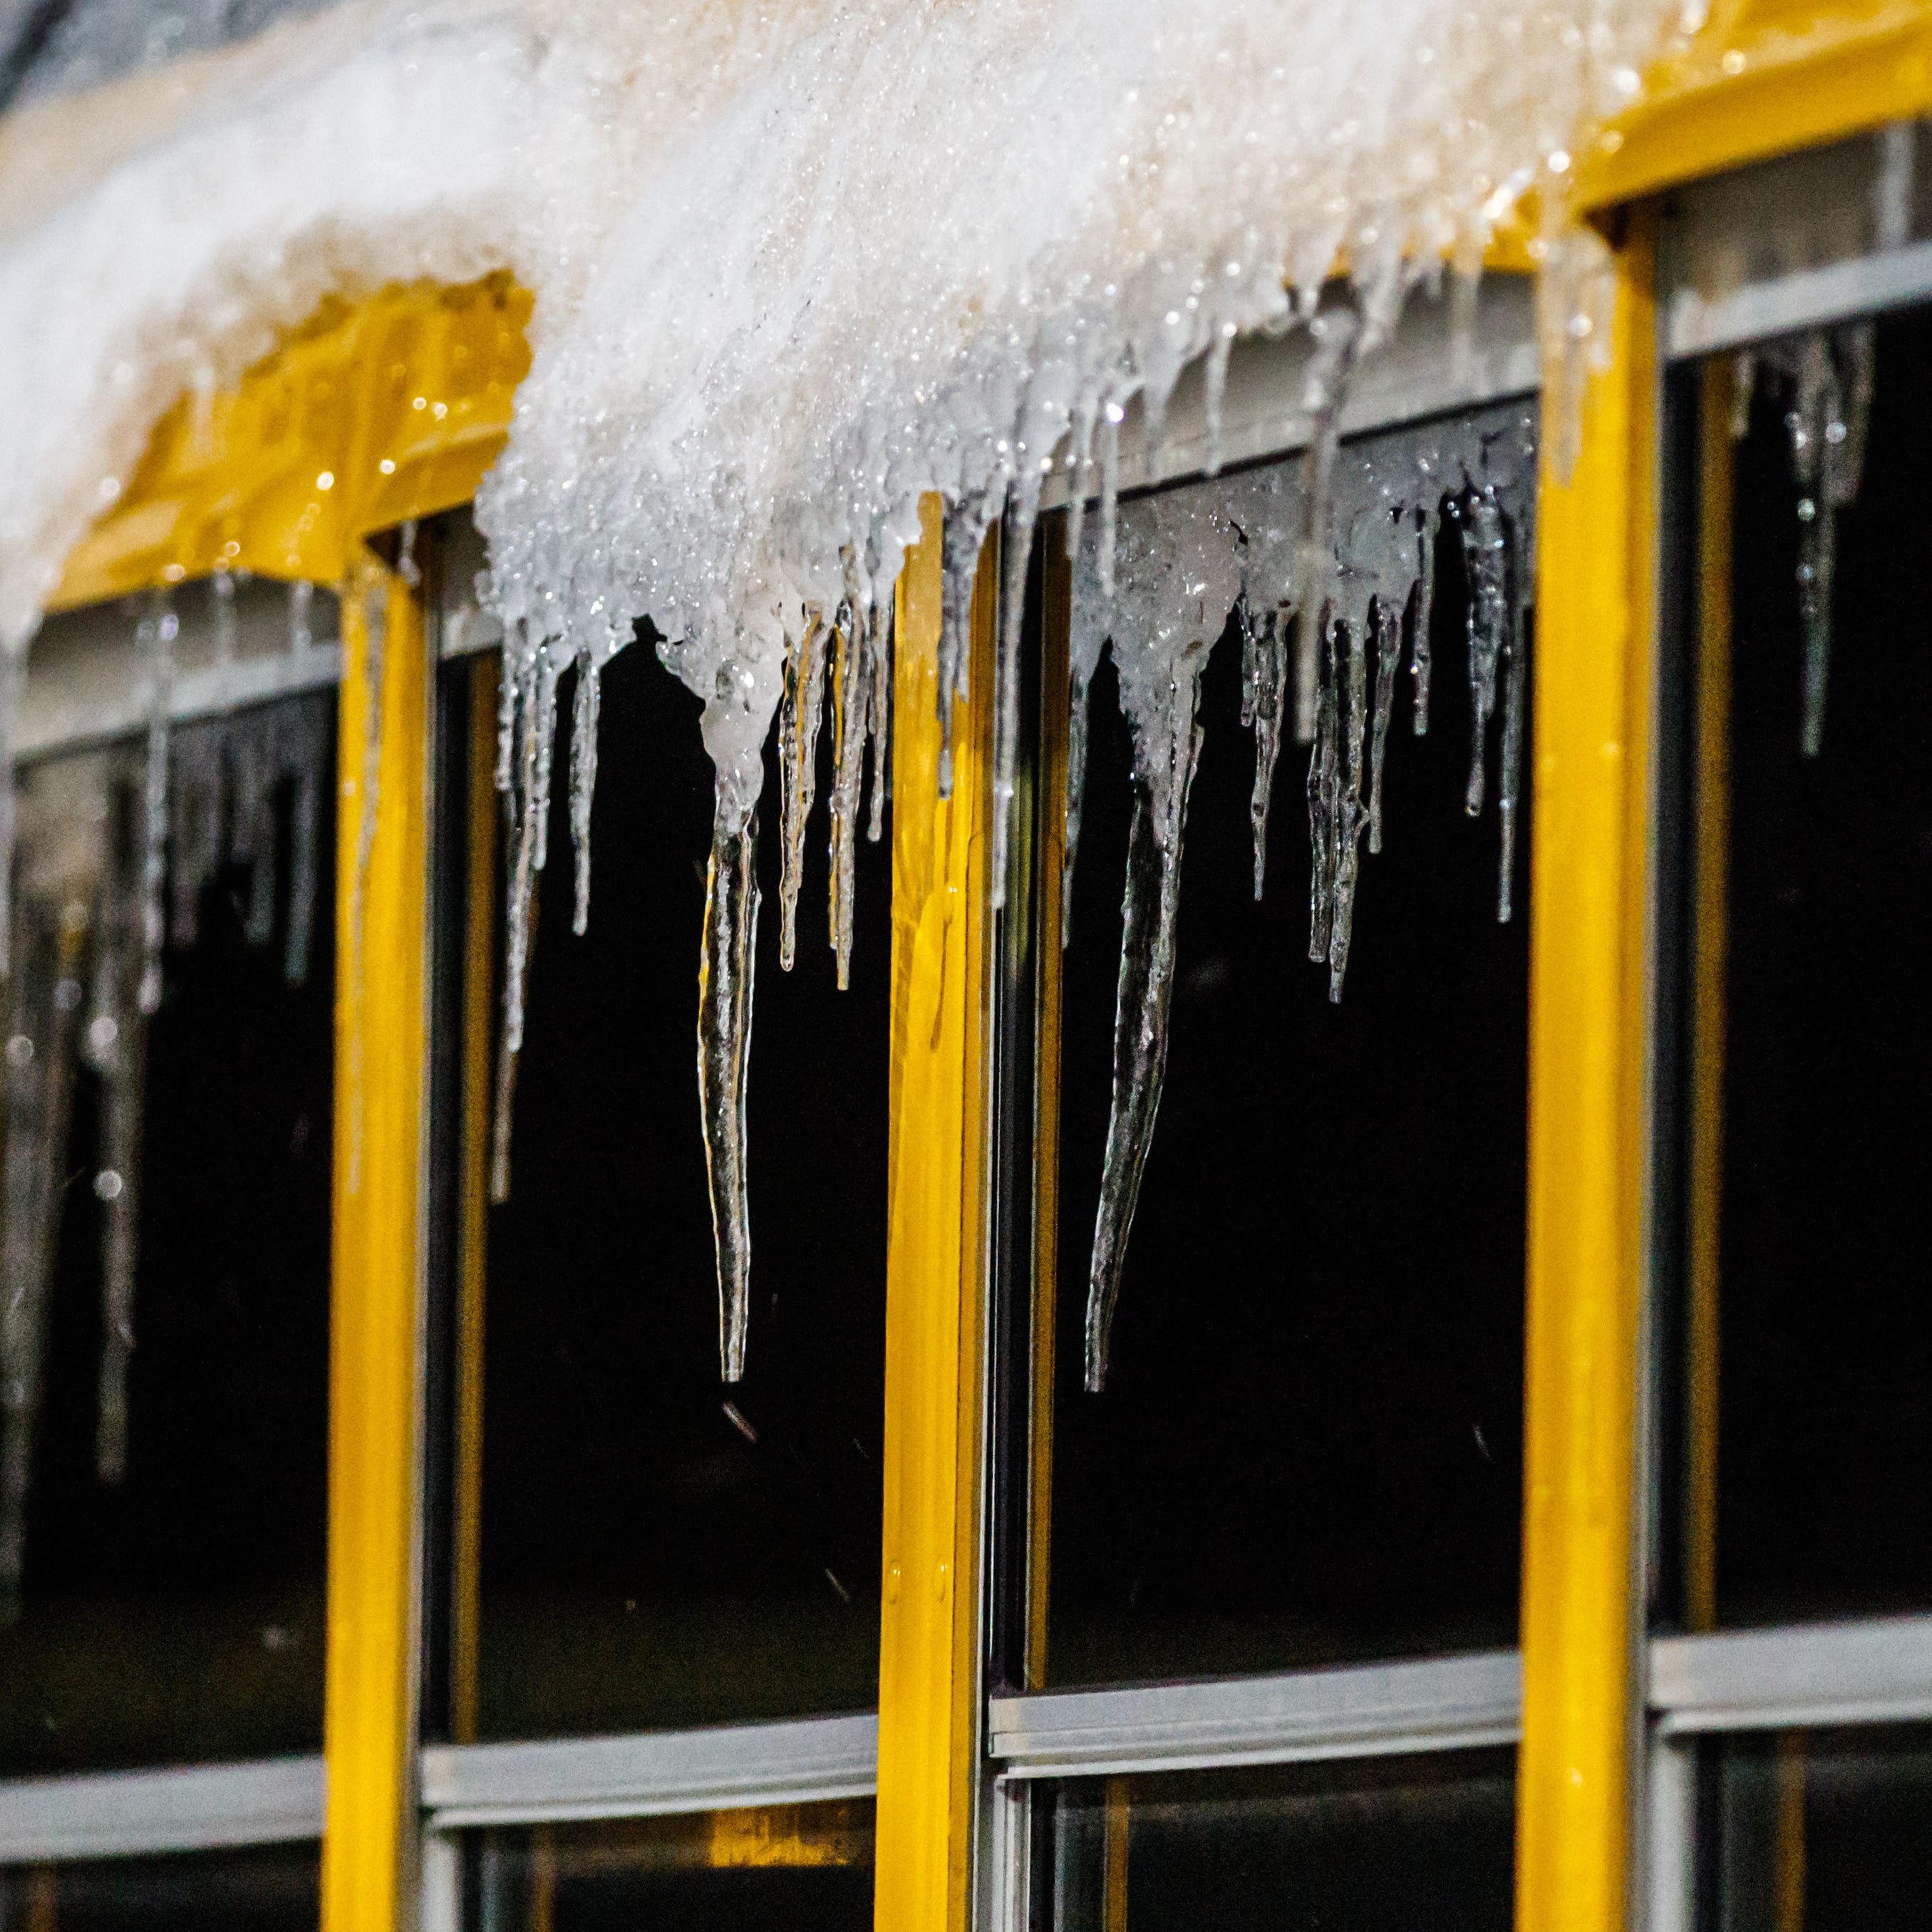 Cold snap on the way: Wind chills around zero forecast for Wednesday